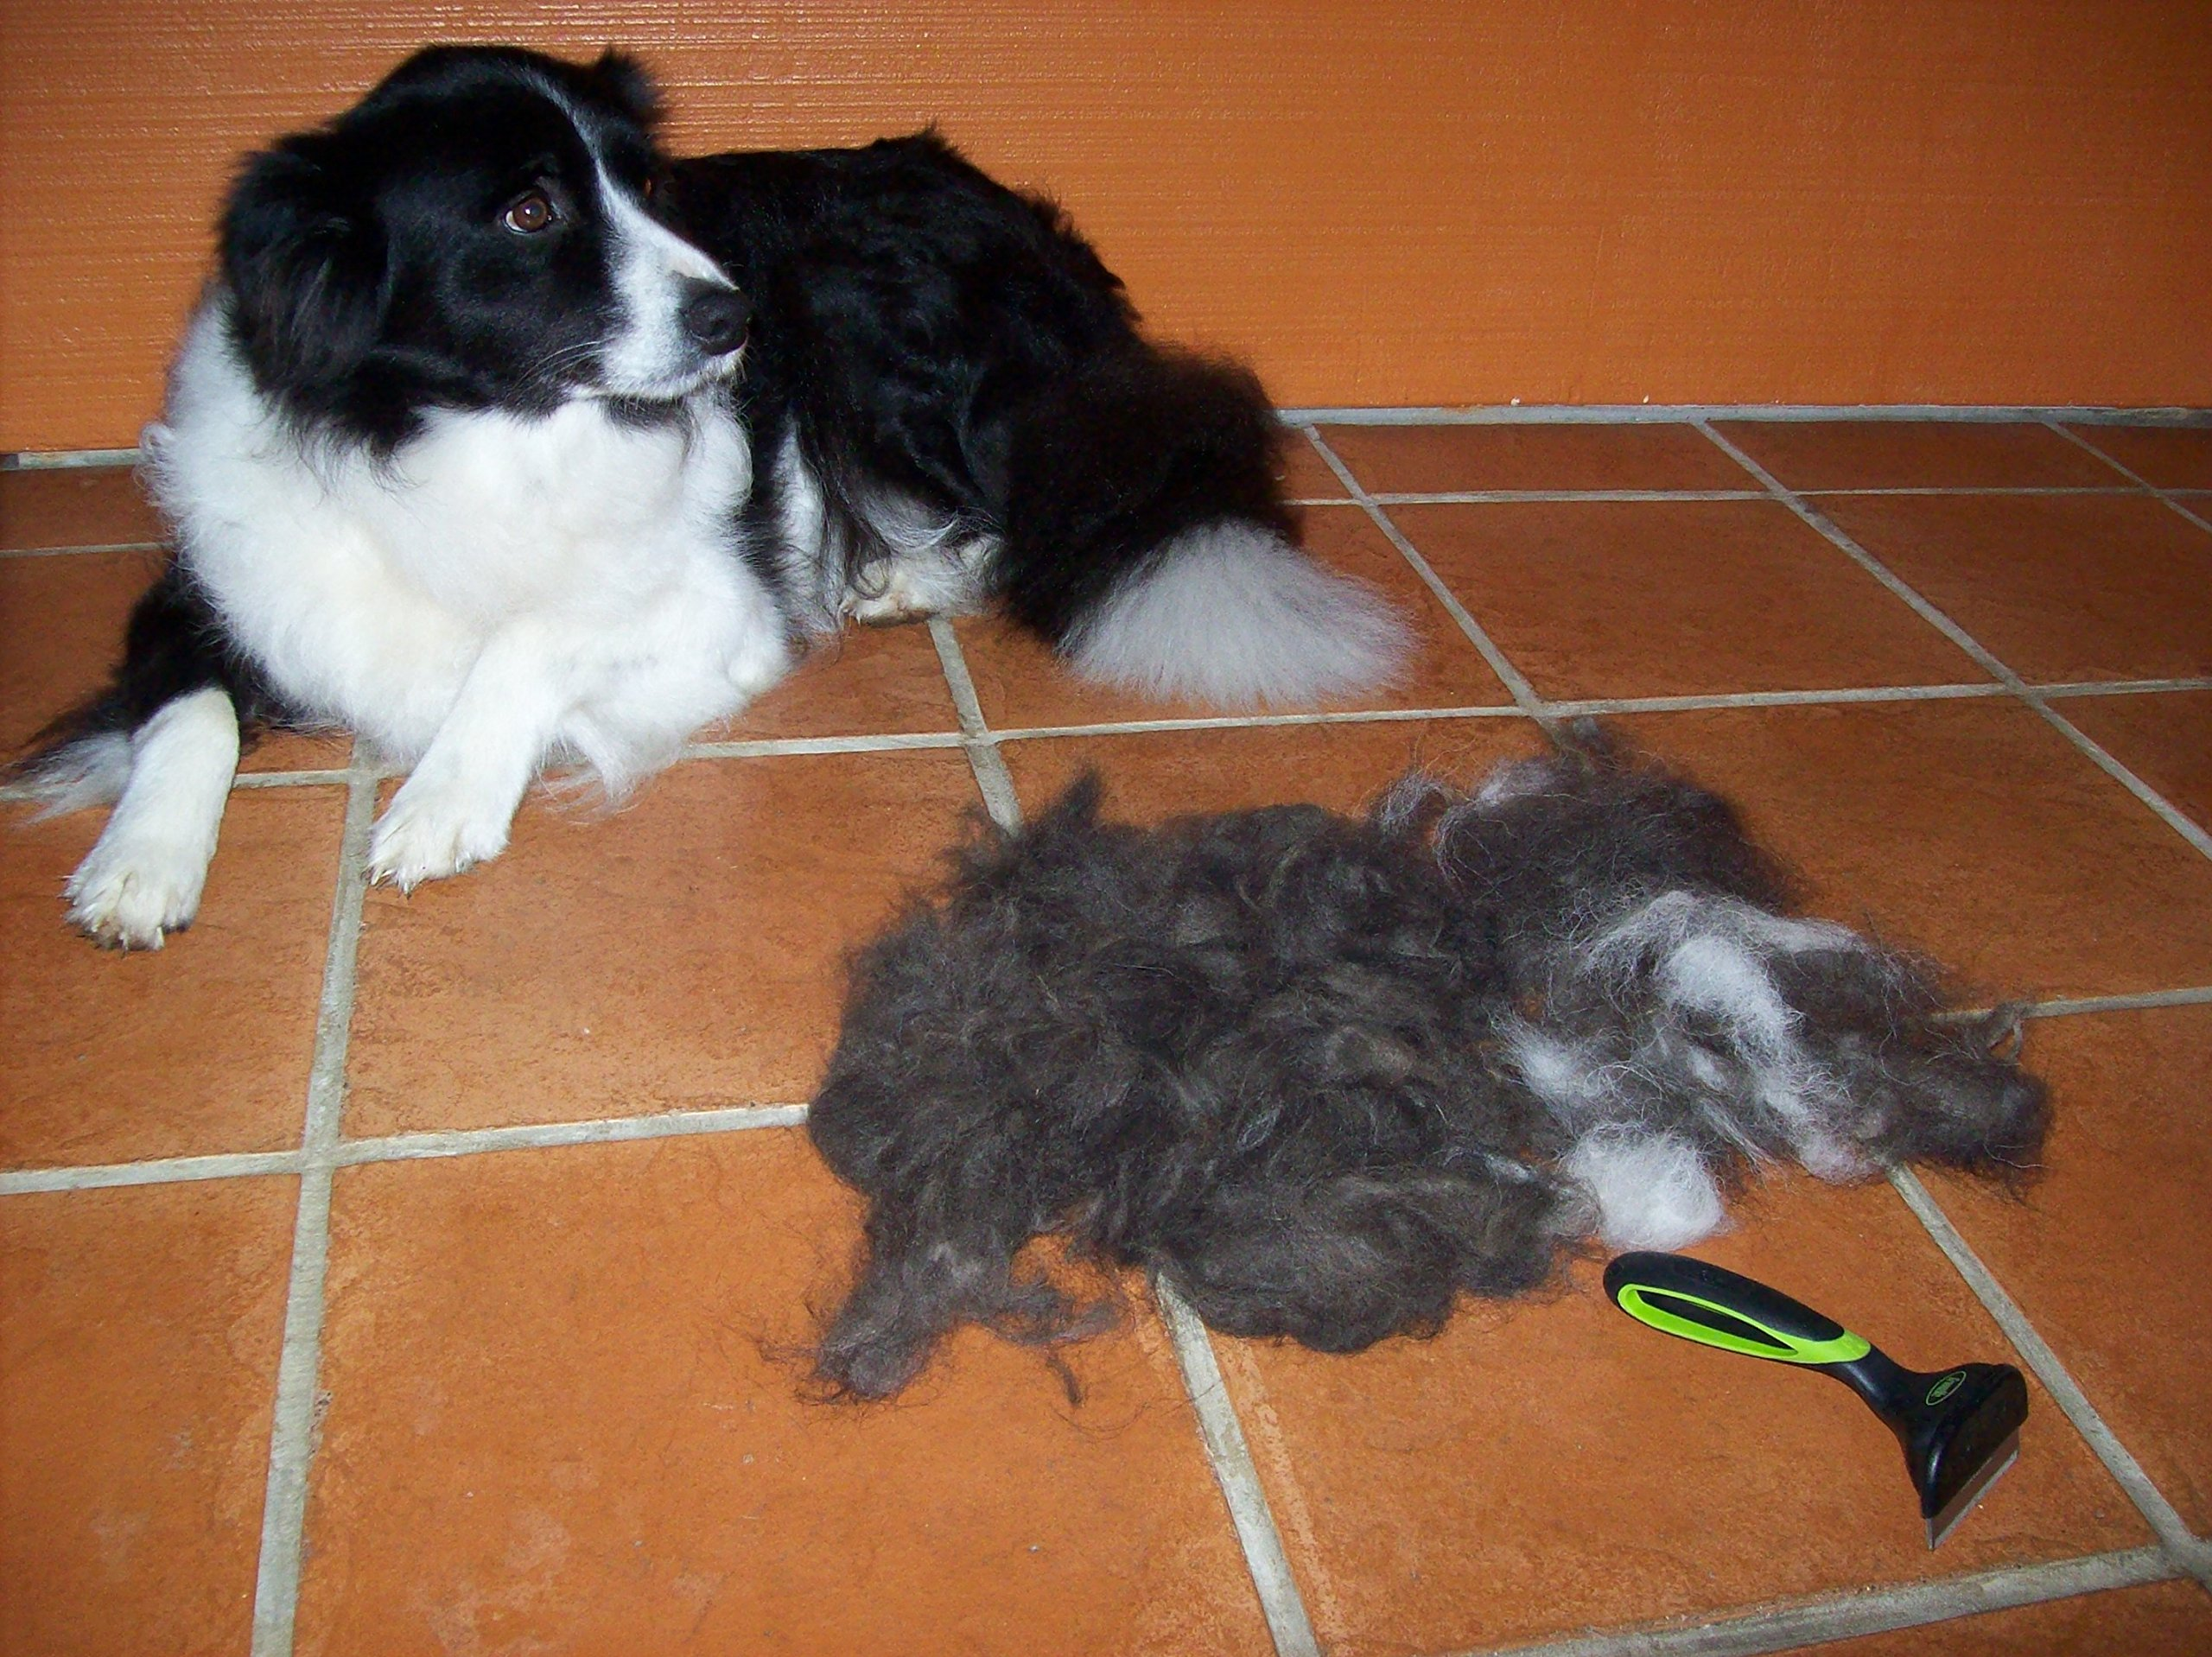 TOP QUALITY de Shedding Tool for Dog + Cat Grooming The Secret to Reducing Pet Shedding Quickly Up To 90% deshedder Tools for Dogs & Cats - Veterinary + Groomer approved for All Pets by GroomMe (Image #5)